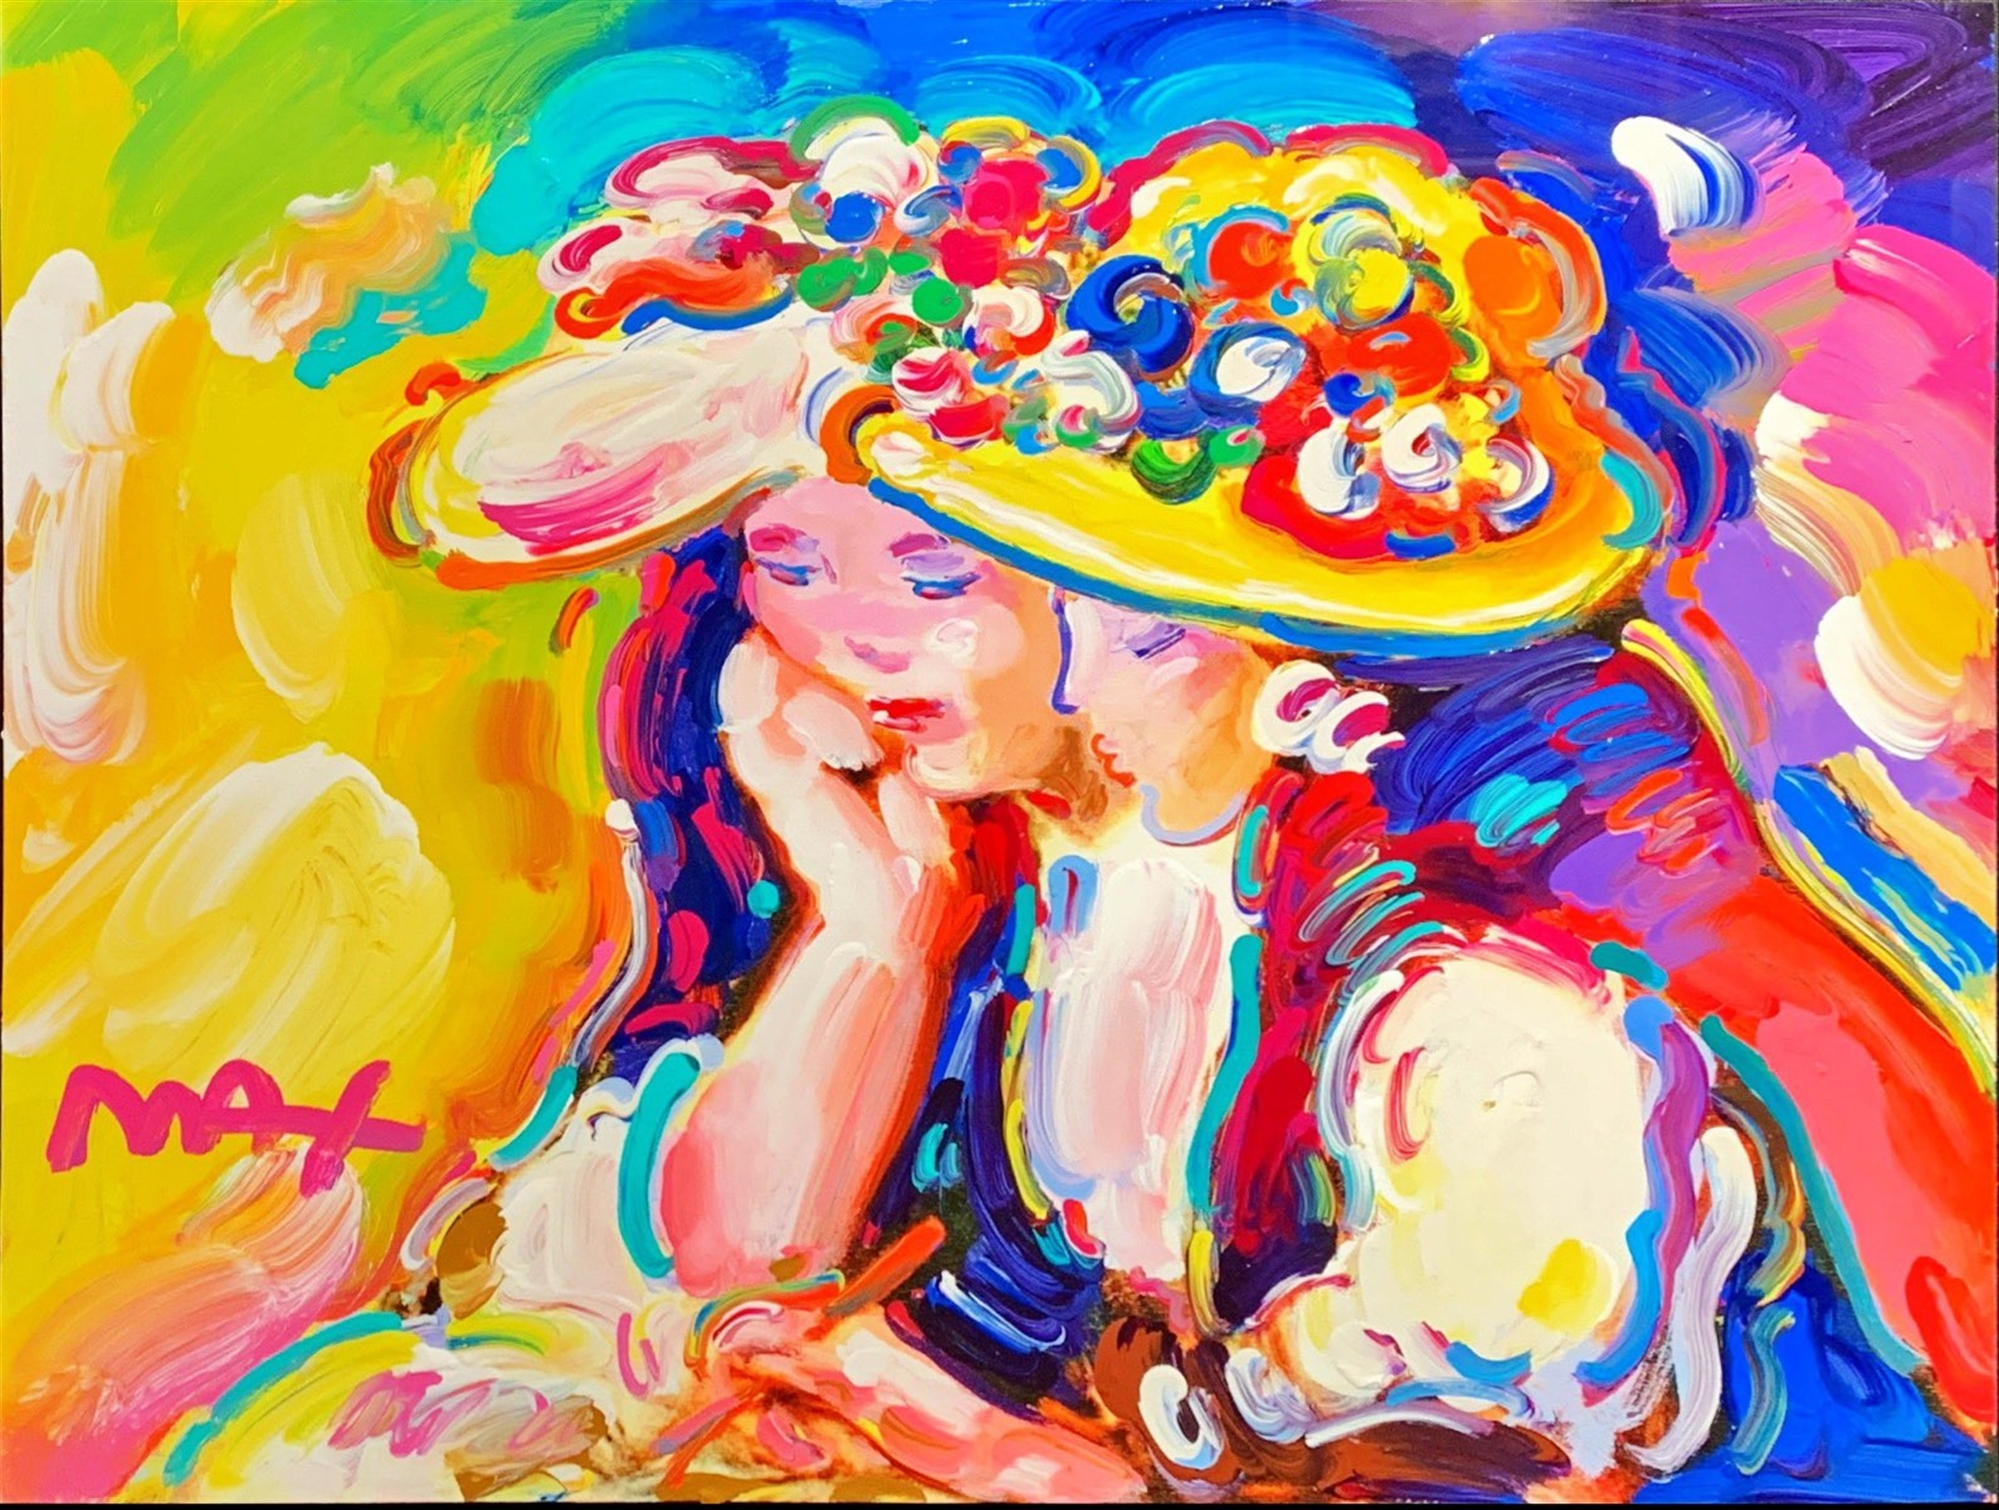 Homage to Renoir: Two Girls Reading in Garden by Peter Max